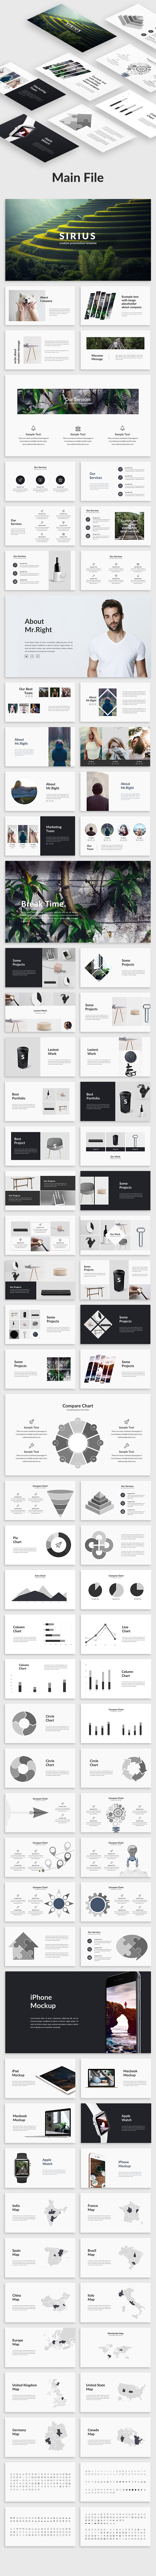 Sirius - Creative Powerpoint Template - Creative PowerPoint Templates